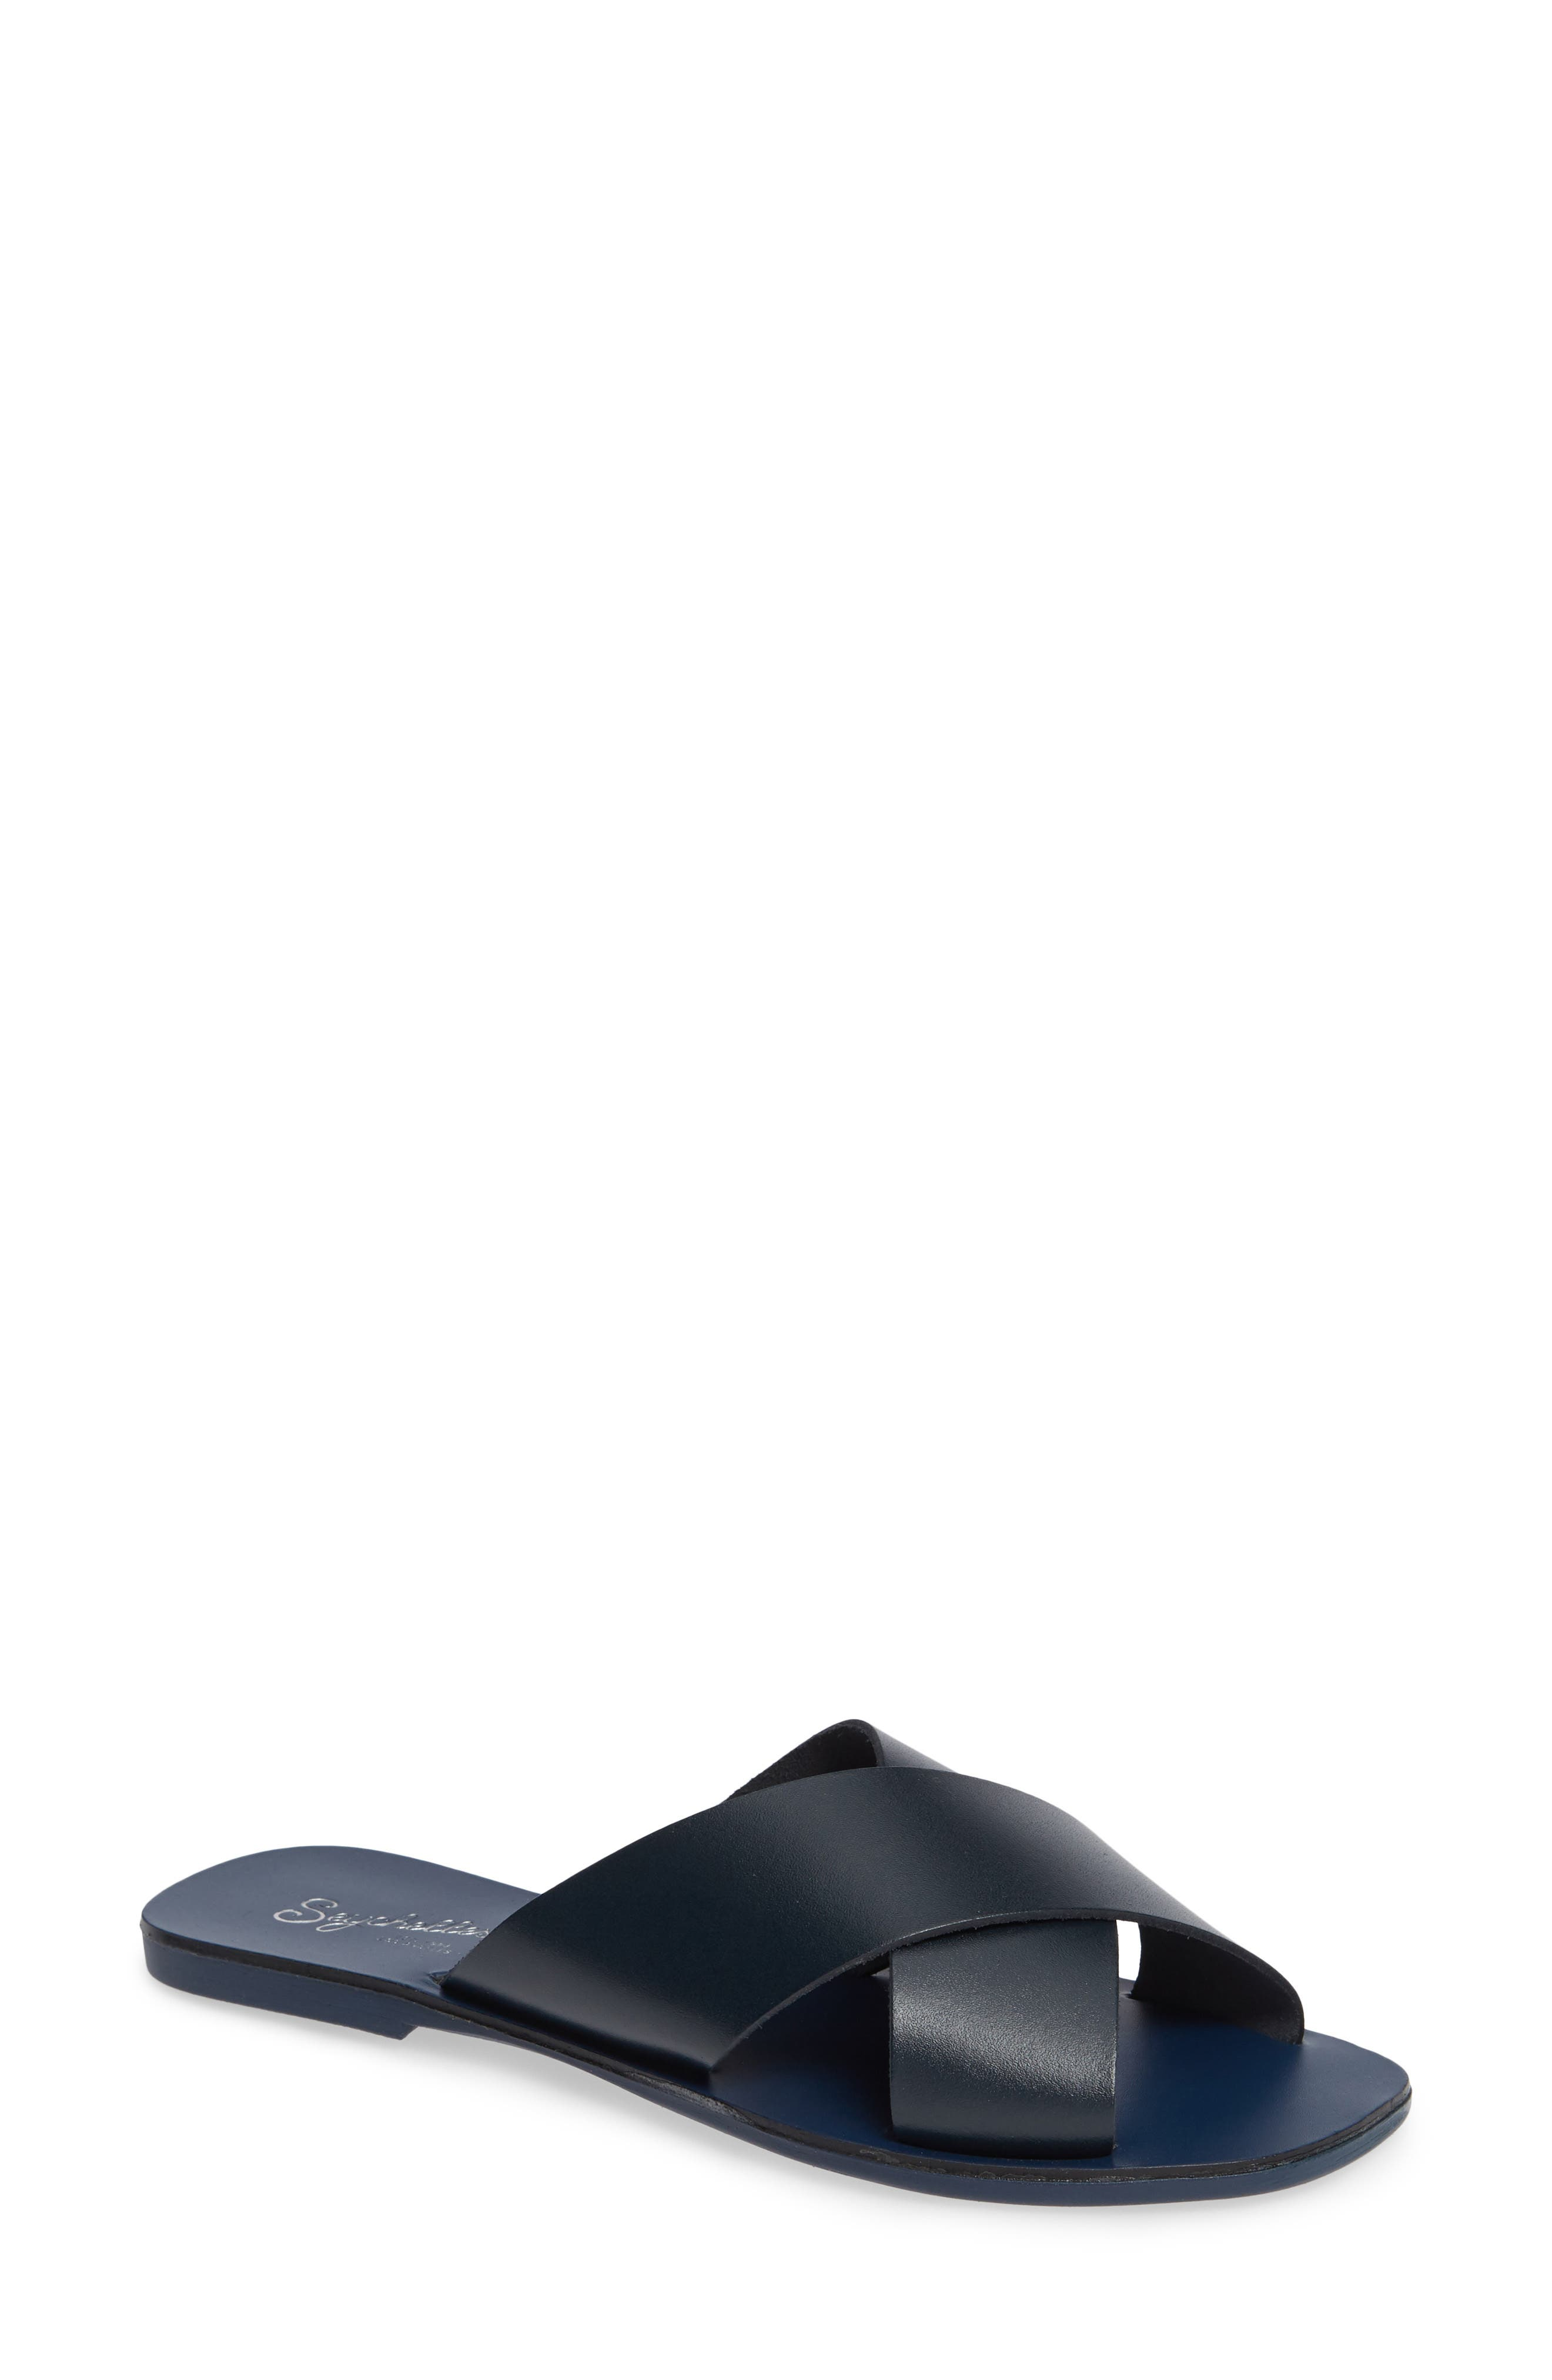 Total Relaxation Slide Sandal,                             Main thumbnail 1, color,                             NAVY LEATHER